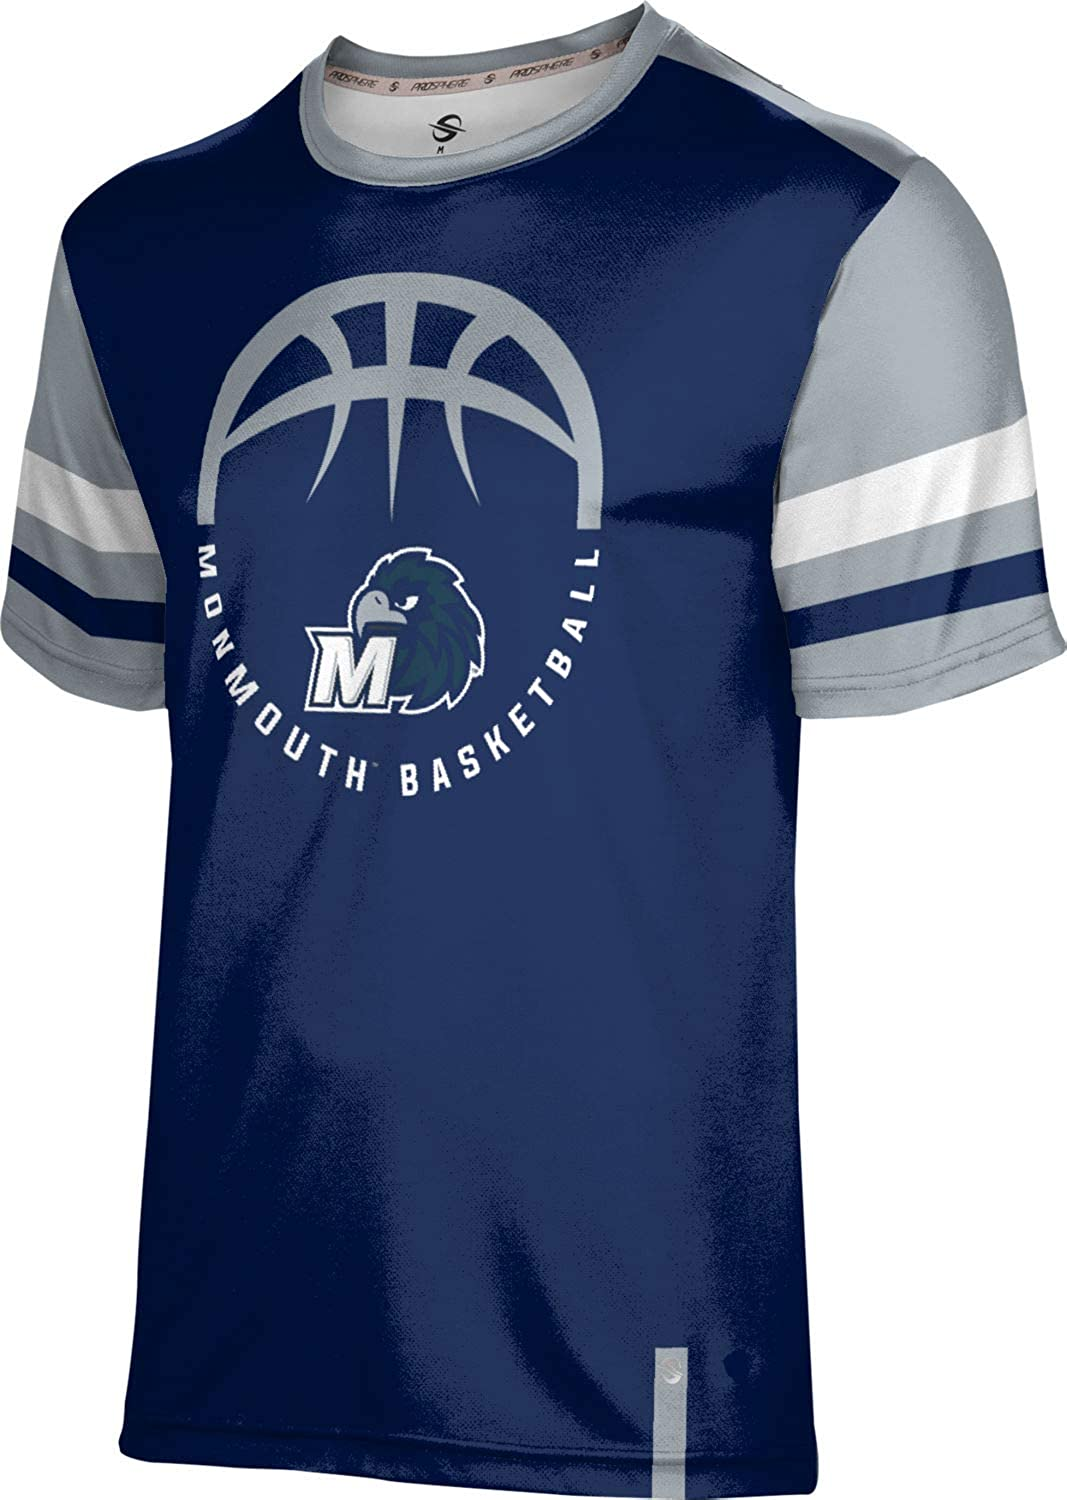 Old School ProSphere Monmouth University Basketball Boys Performance T-Shirt